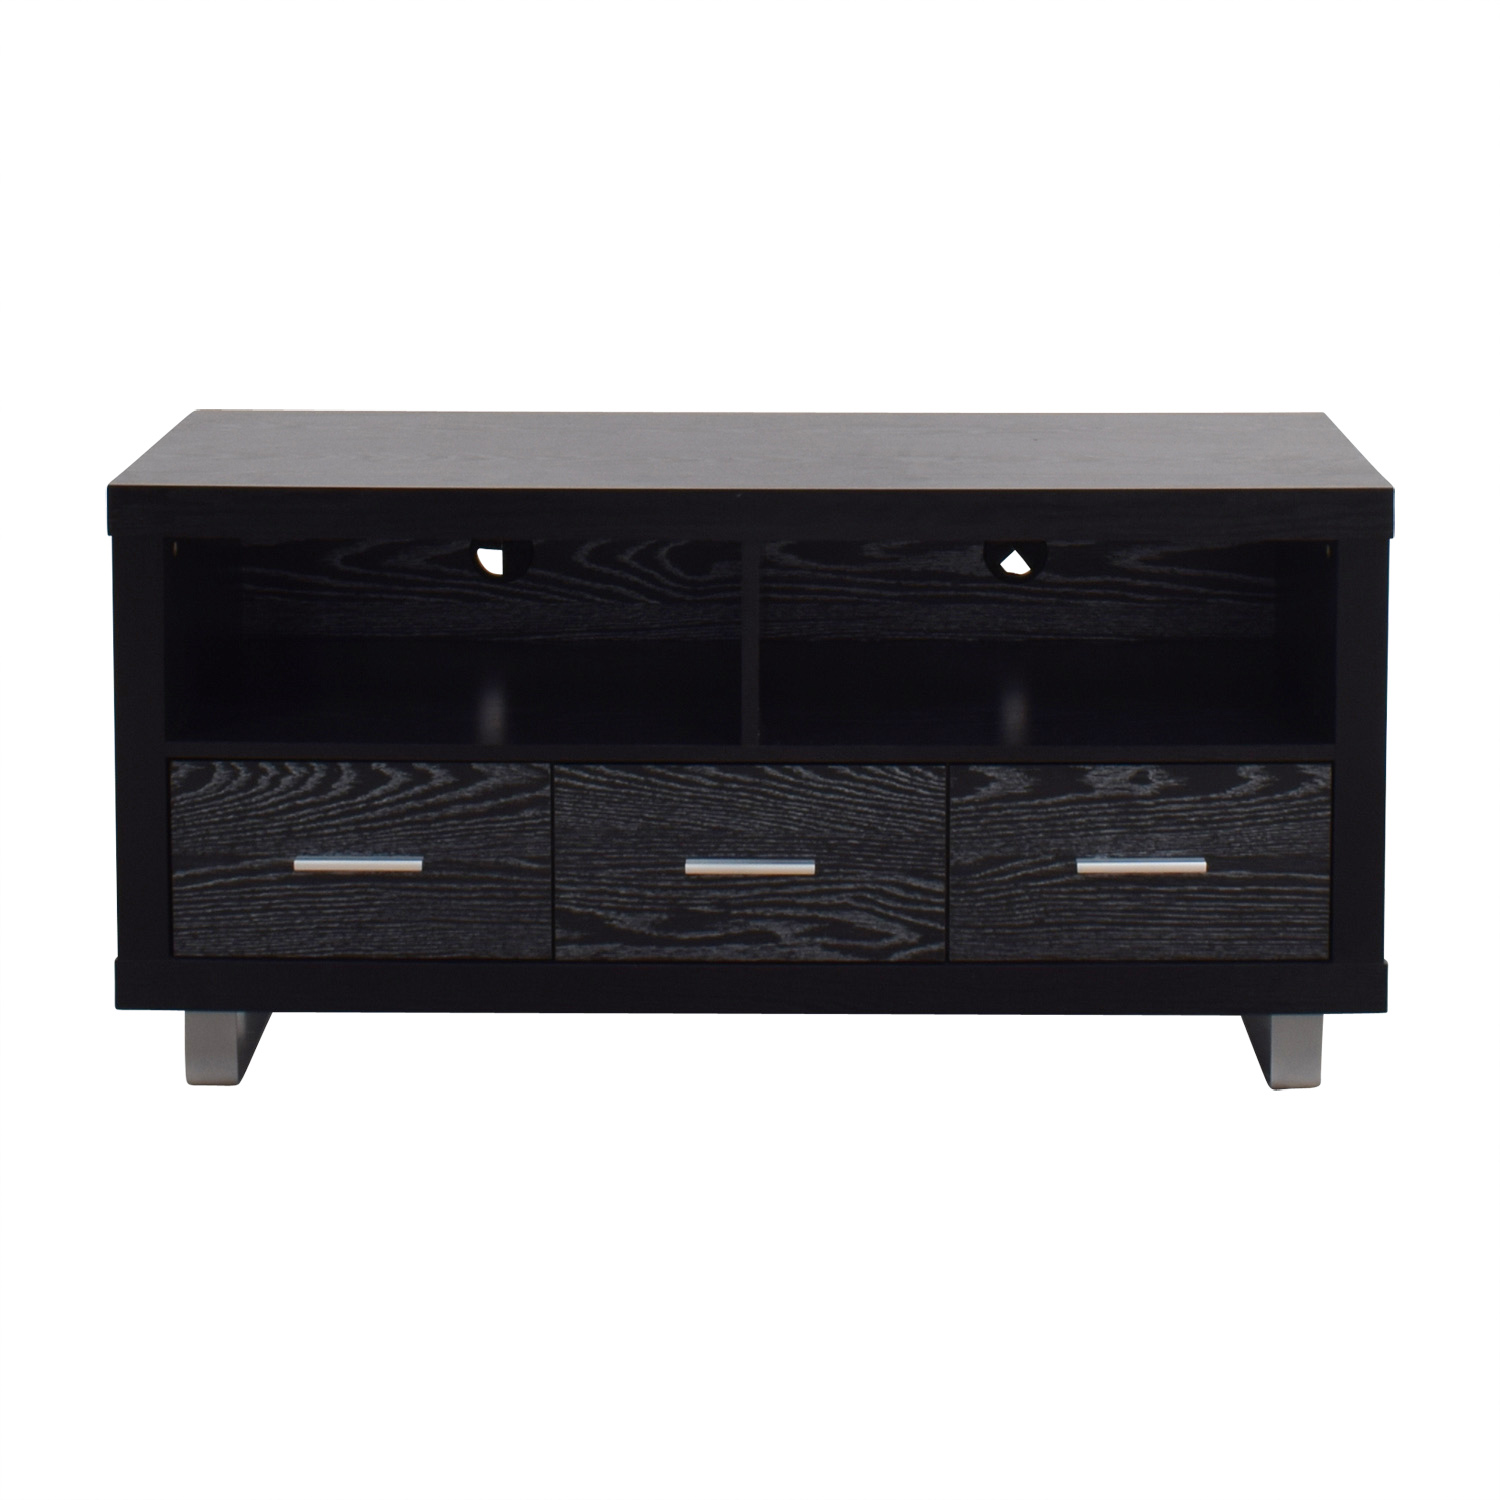 Coaster Coaster Black Three-Drawer Media Cabinet Storage